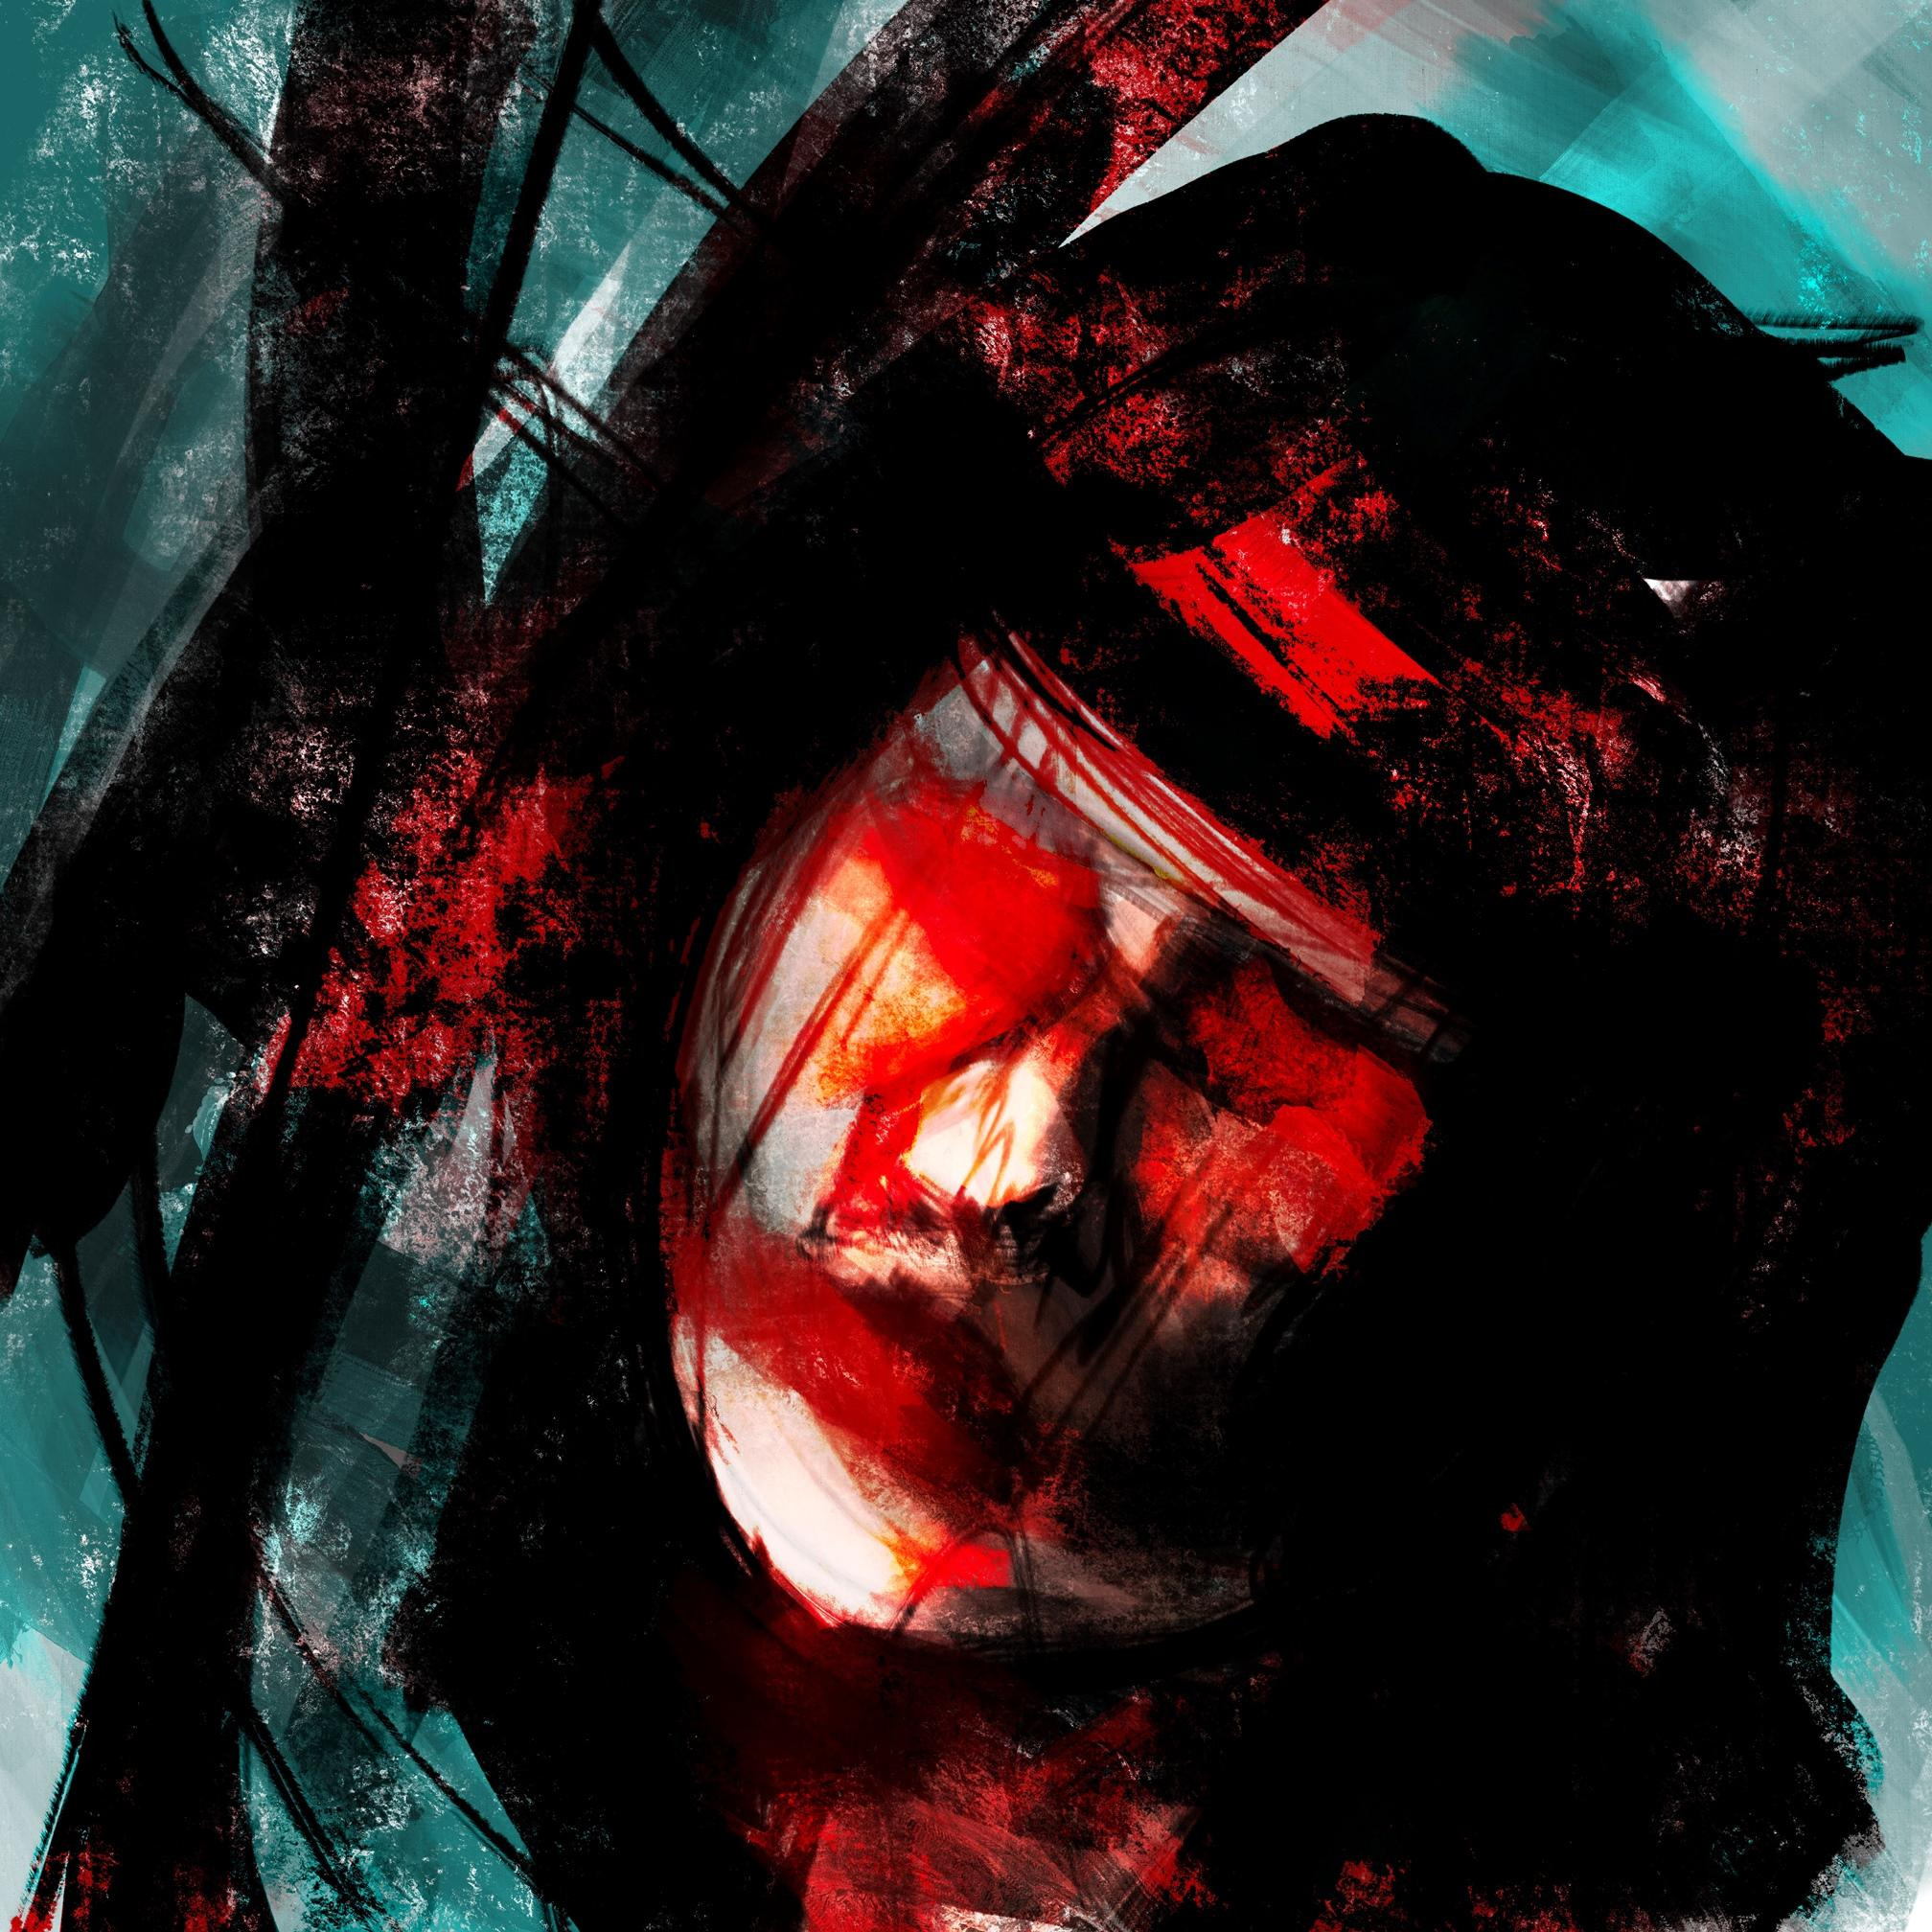 An abstract digital painting by Lily Bourne printed on eco fine art paper titled Tuned showing a female face amongst turquoise, black and red lines.